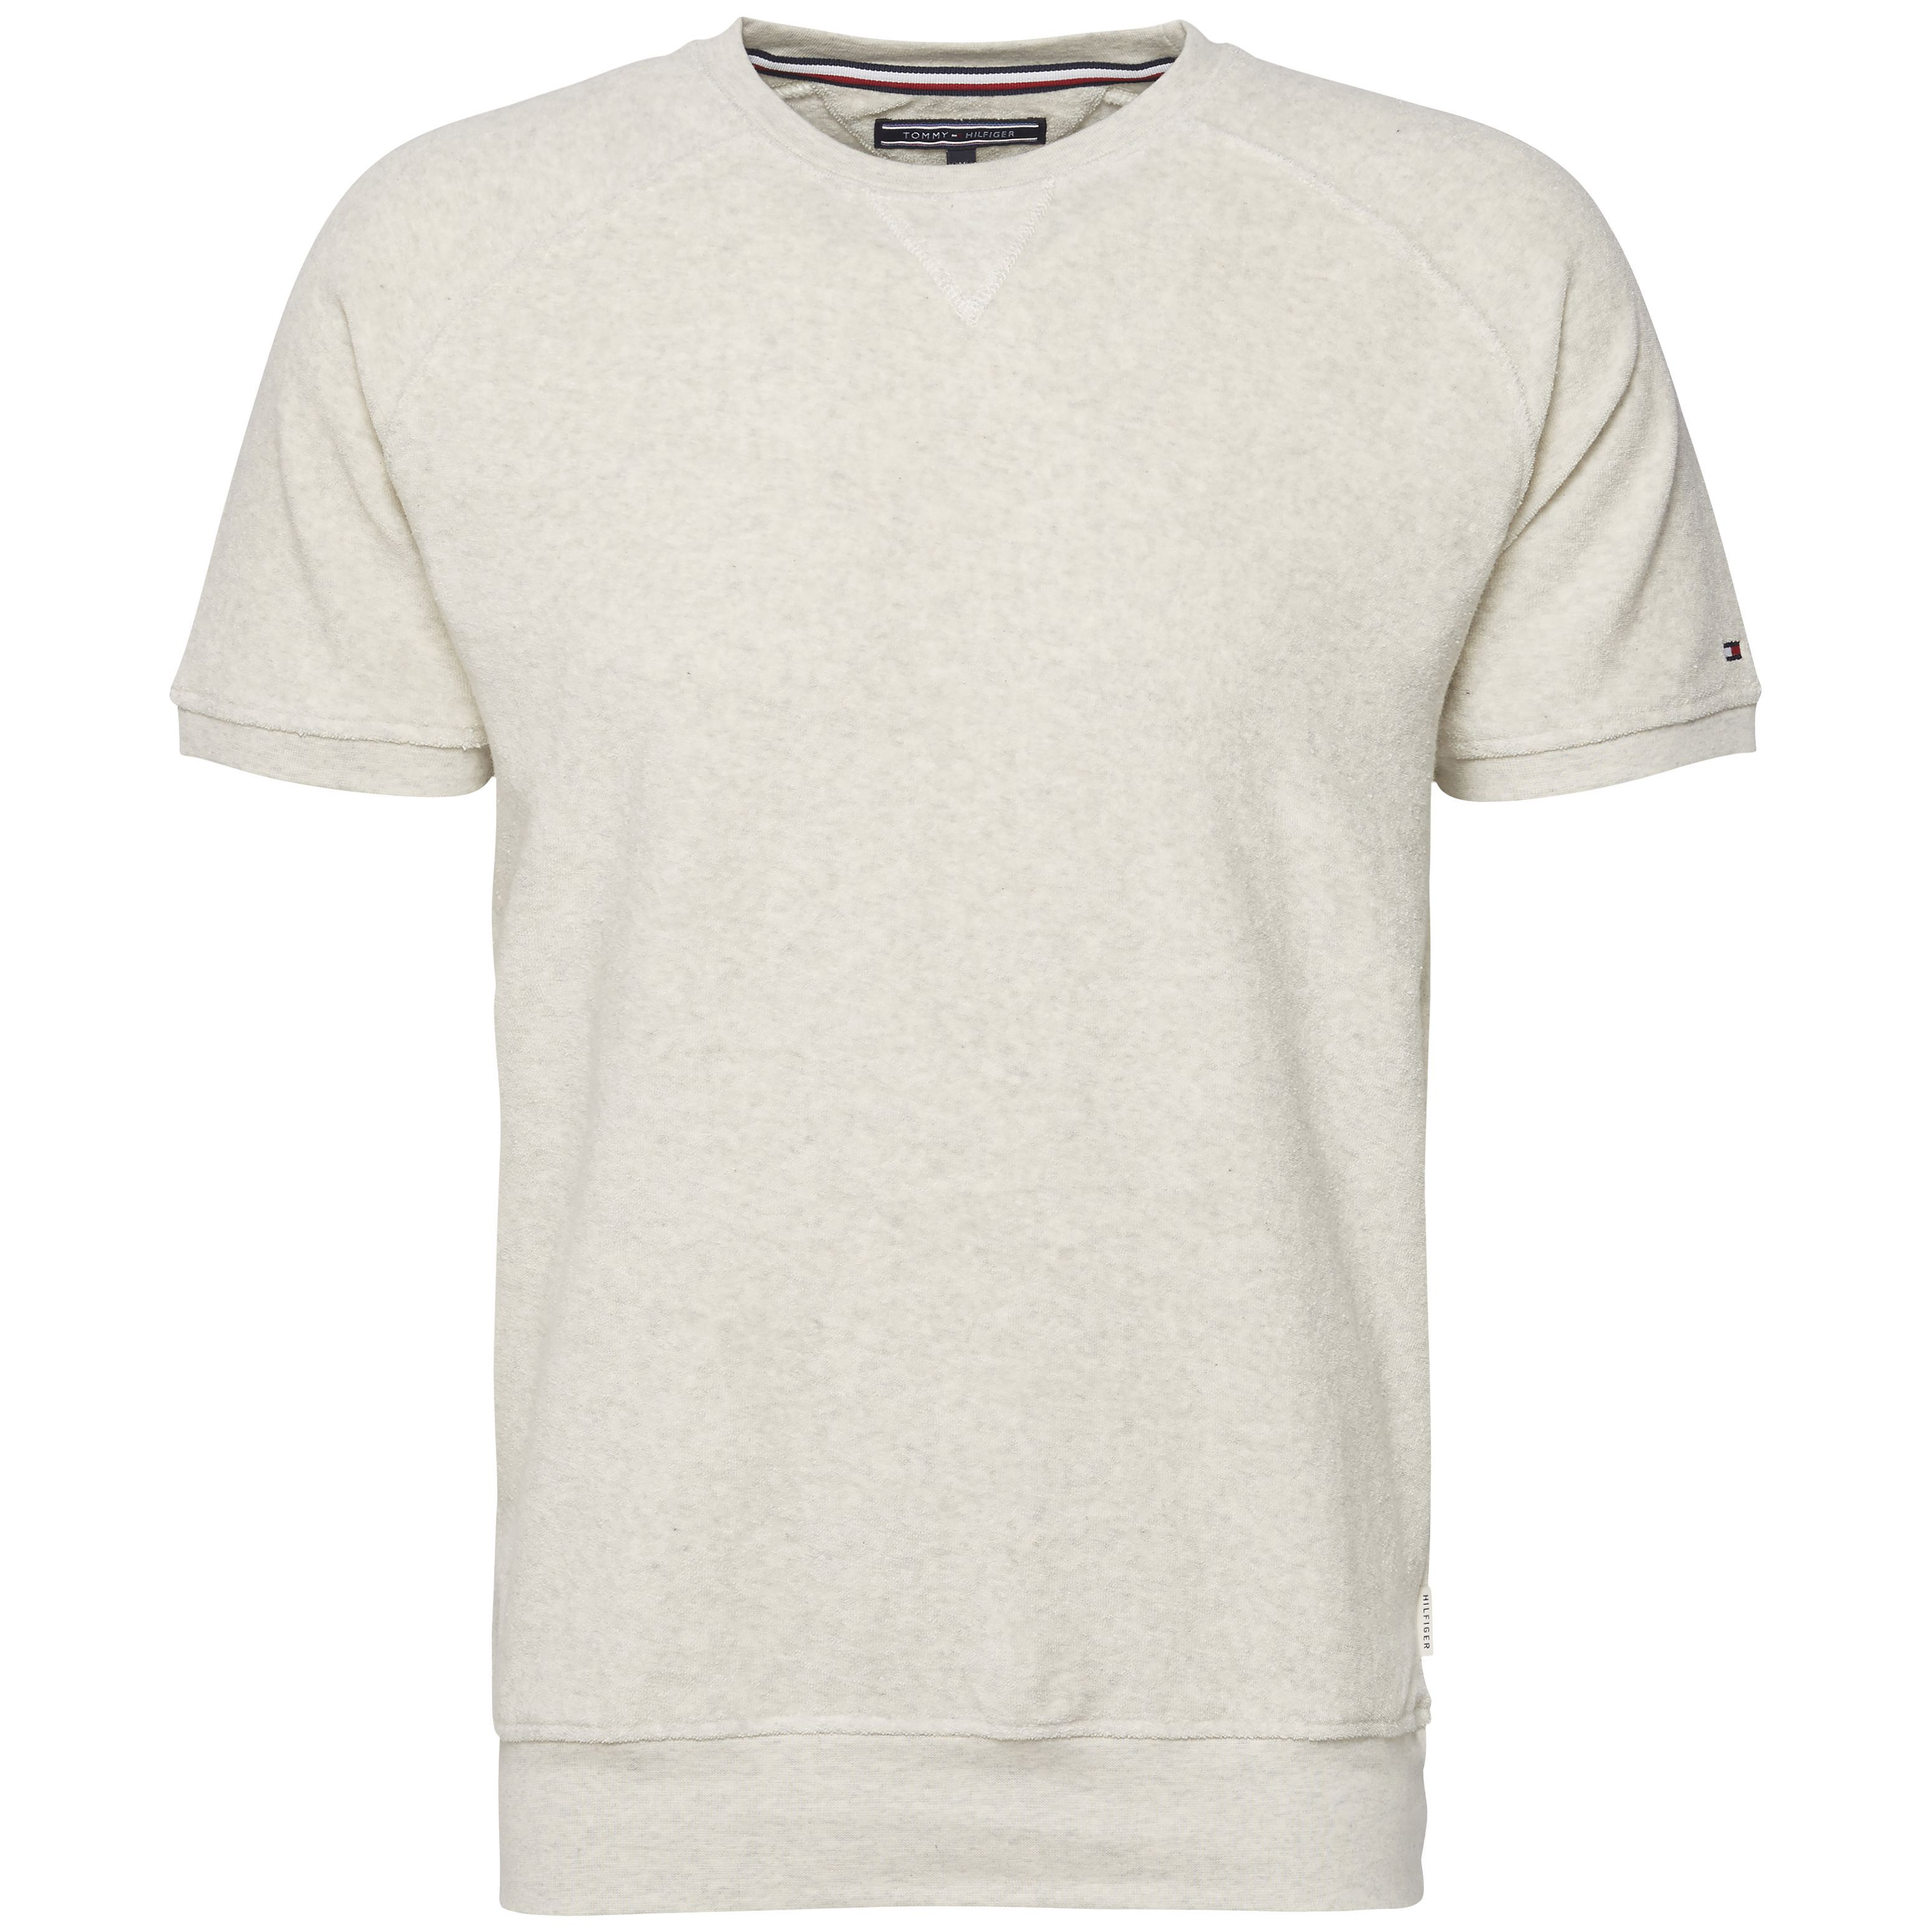 Men's Tommy Hilfiger Ruben Towelling Top, Off White